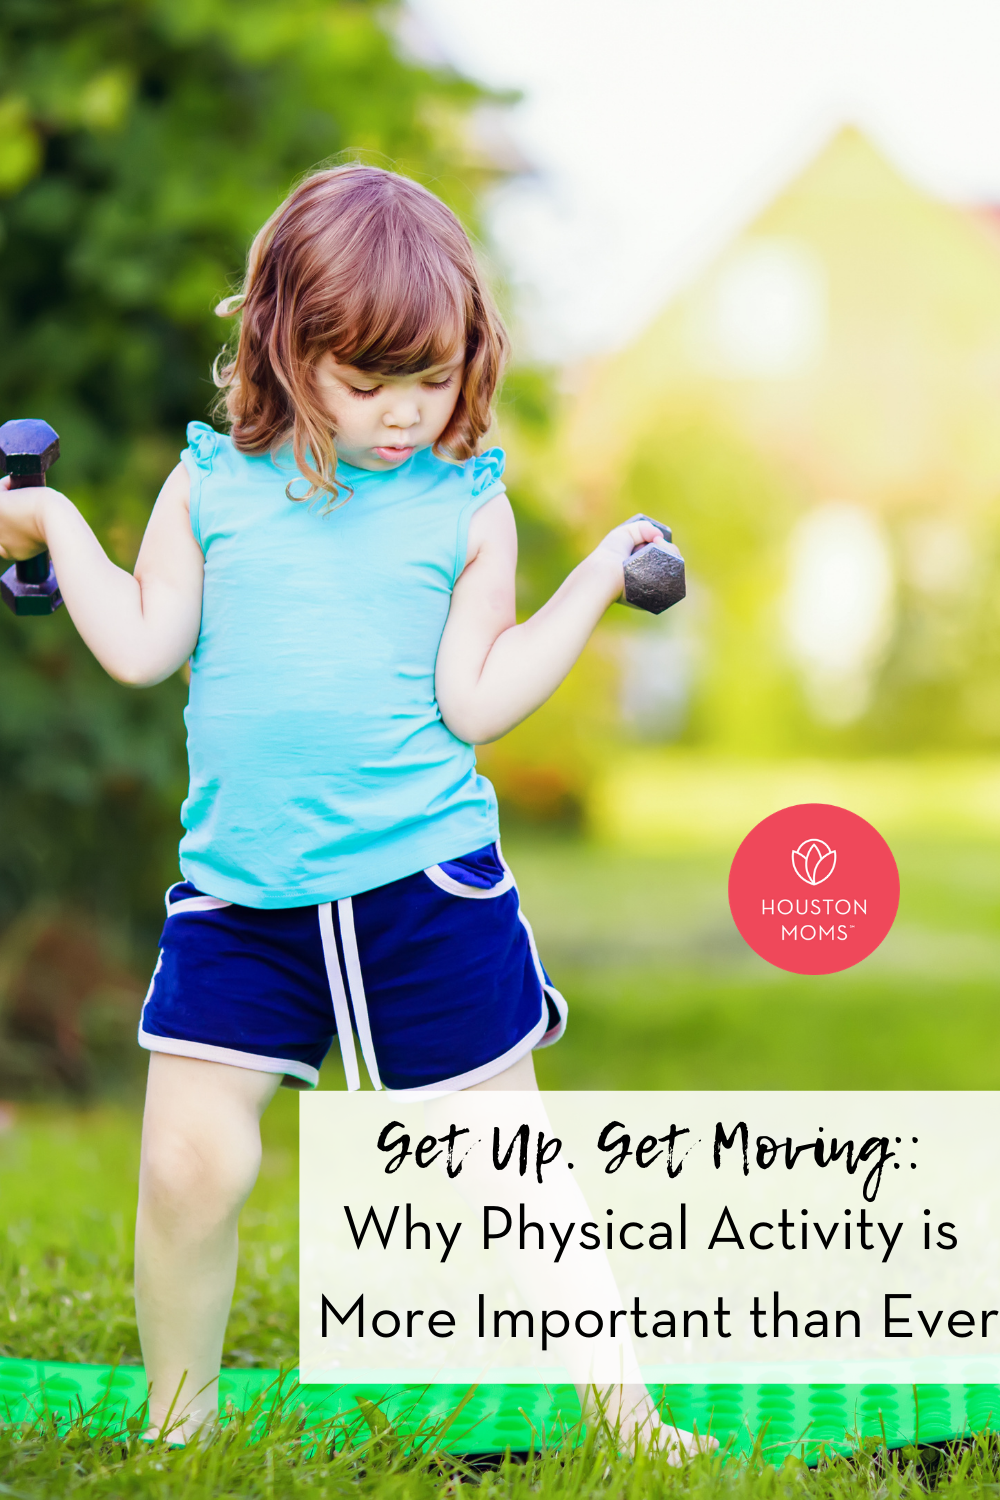 """Houston Moms """"Get Up. Get Moving:: Why Physical Activity is More Important than Ever"""" #houstonmoms #houstonmomsblog #momsaroundhouston"""